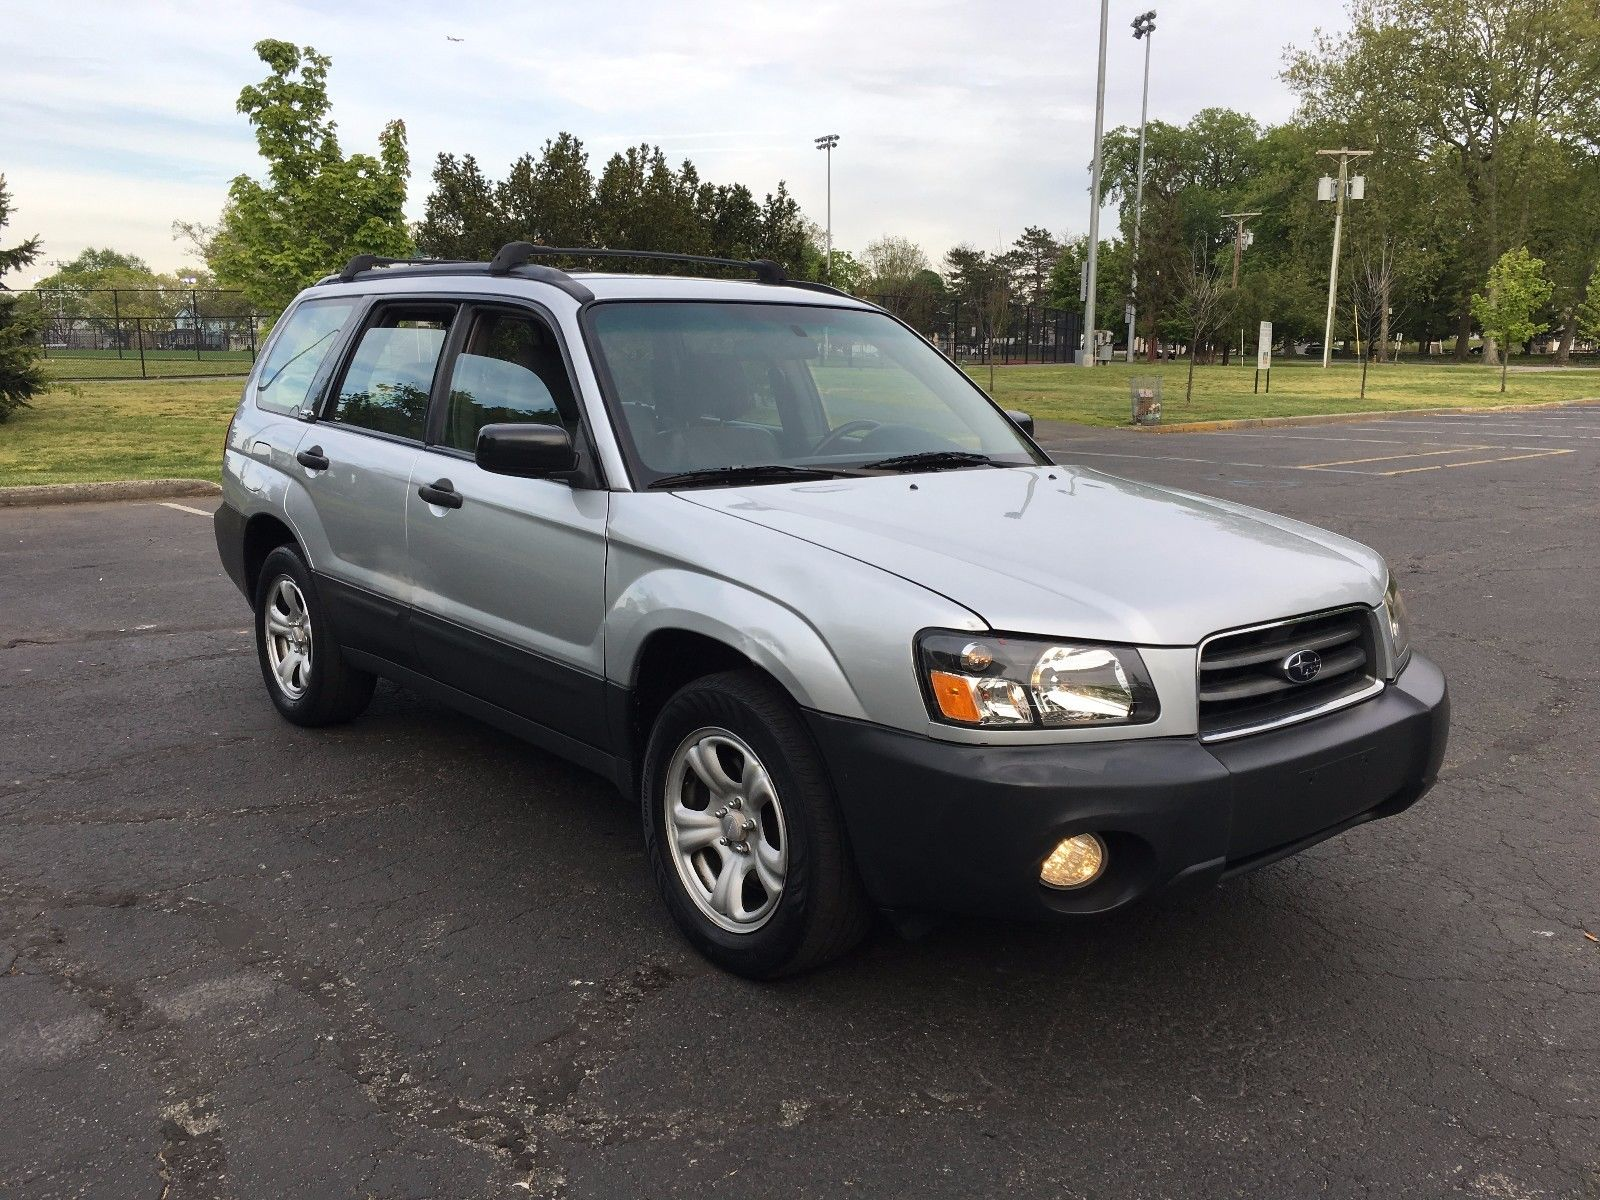 low mileage 2004 subaru forester x 4 4 for sale. Black Bedroom Furniture Sets. Home Design Ideas